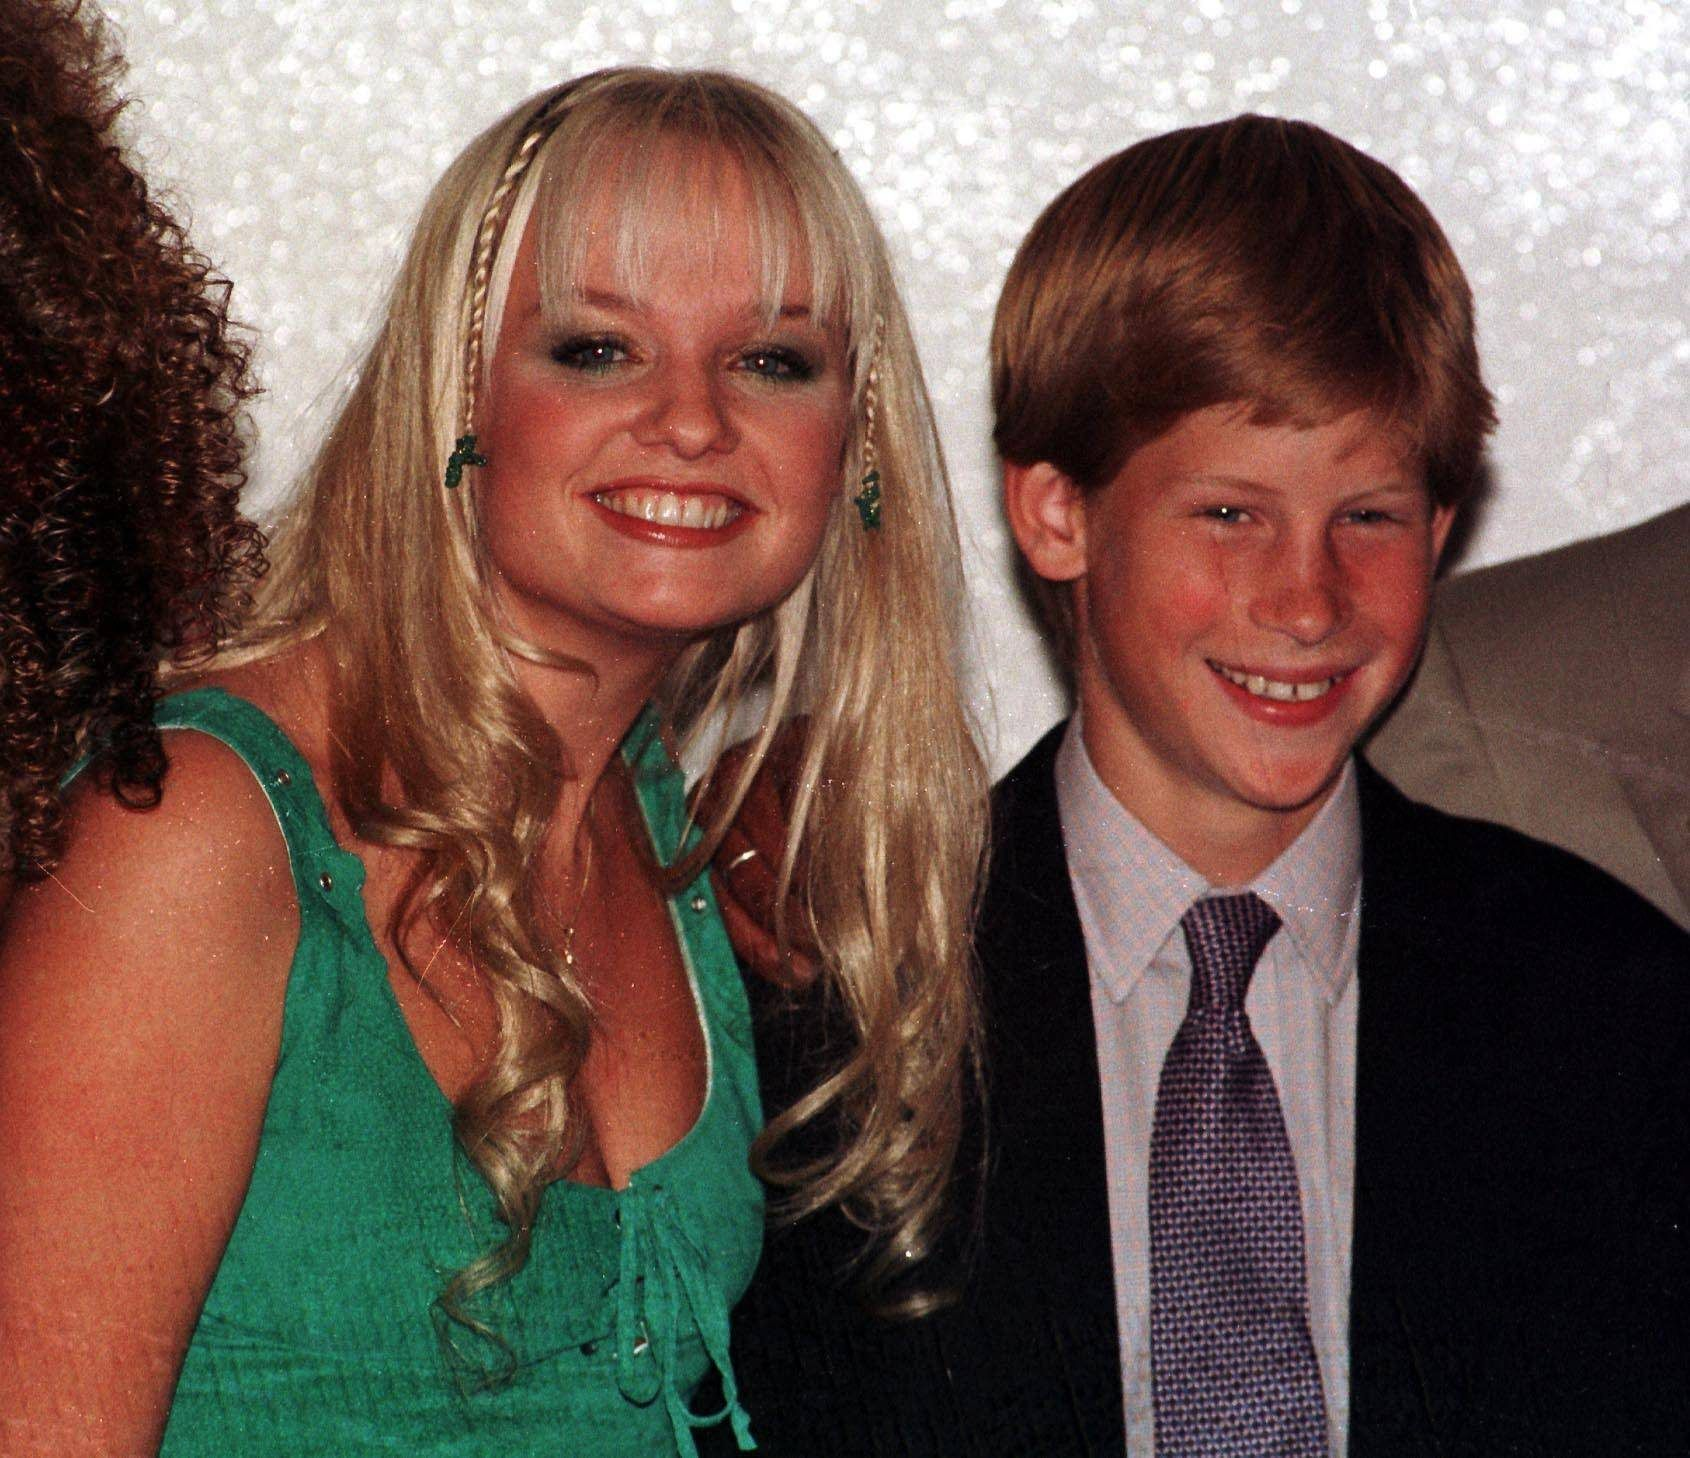 Rare Photos Of Prince Harry You Haven't Seen - Fame10